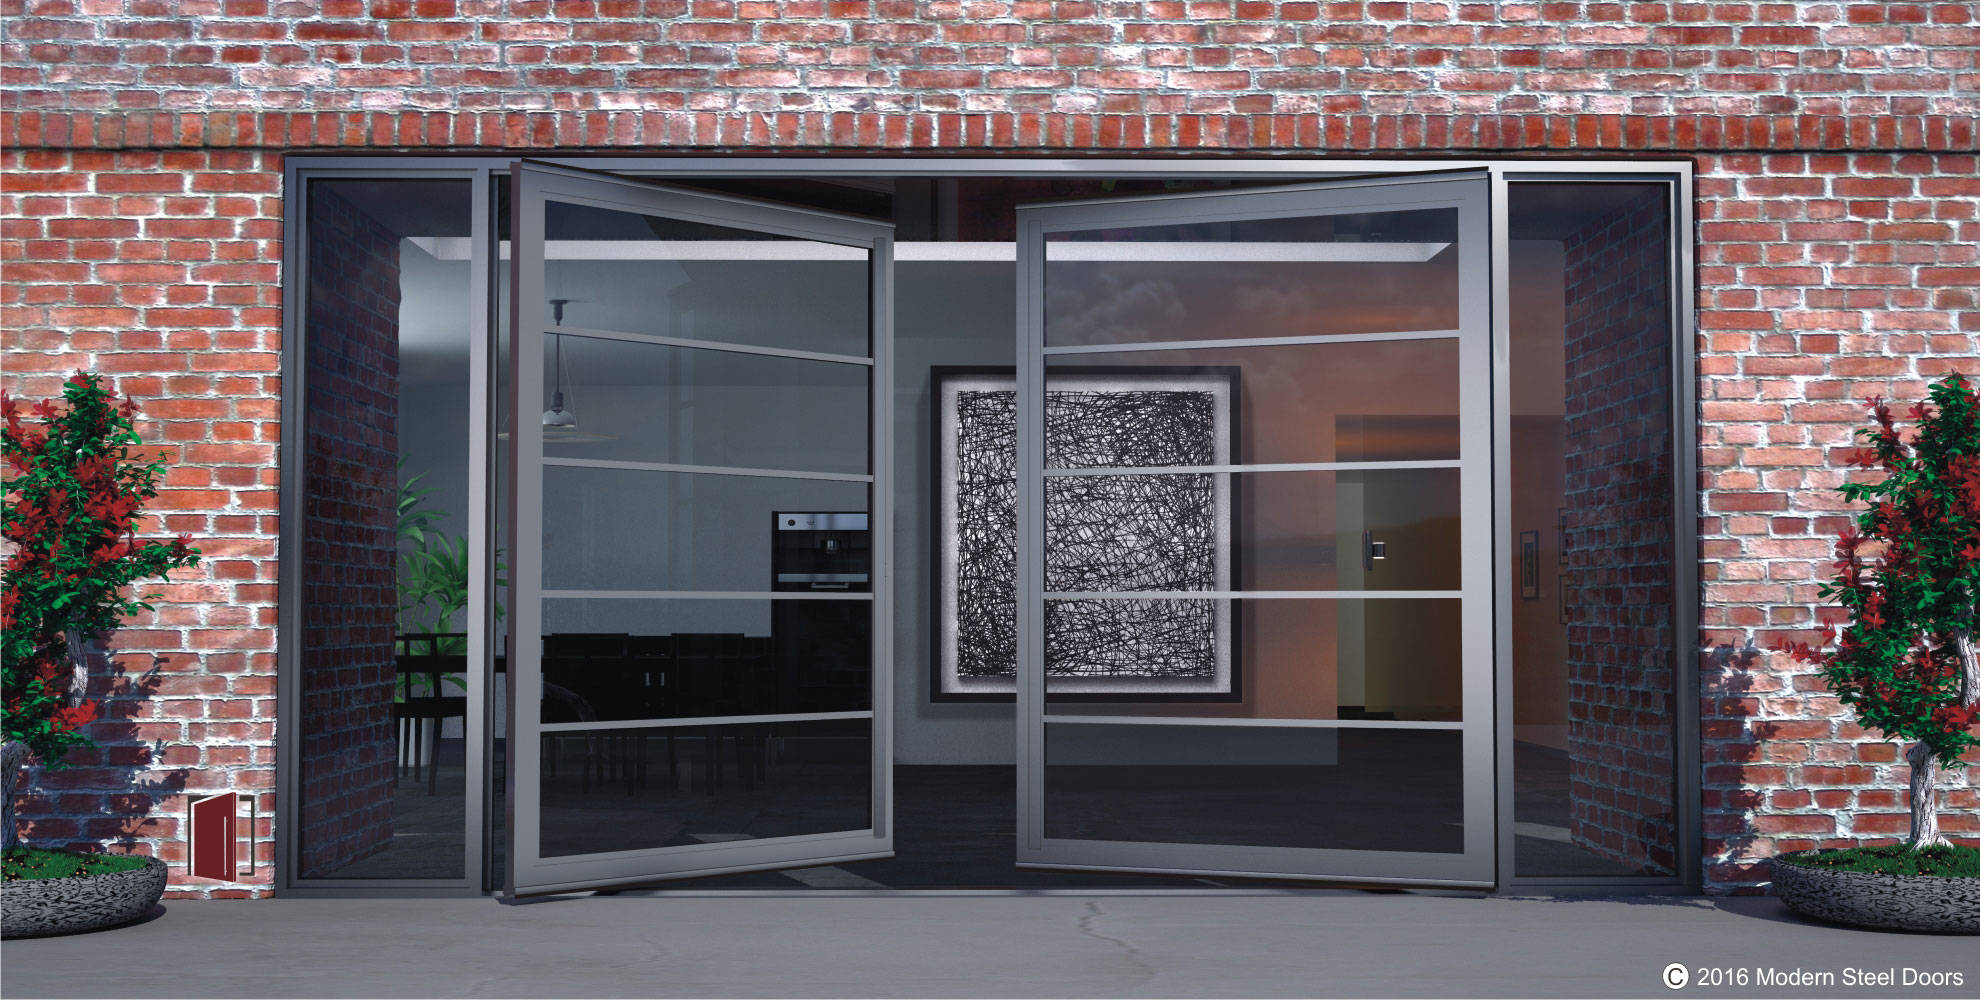 large double pivot doors made of segmented glass and steel with sidelights